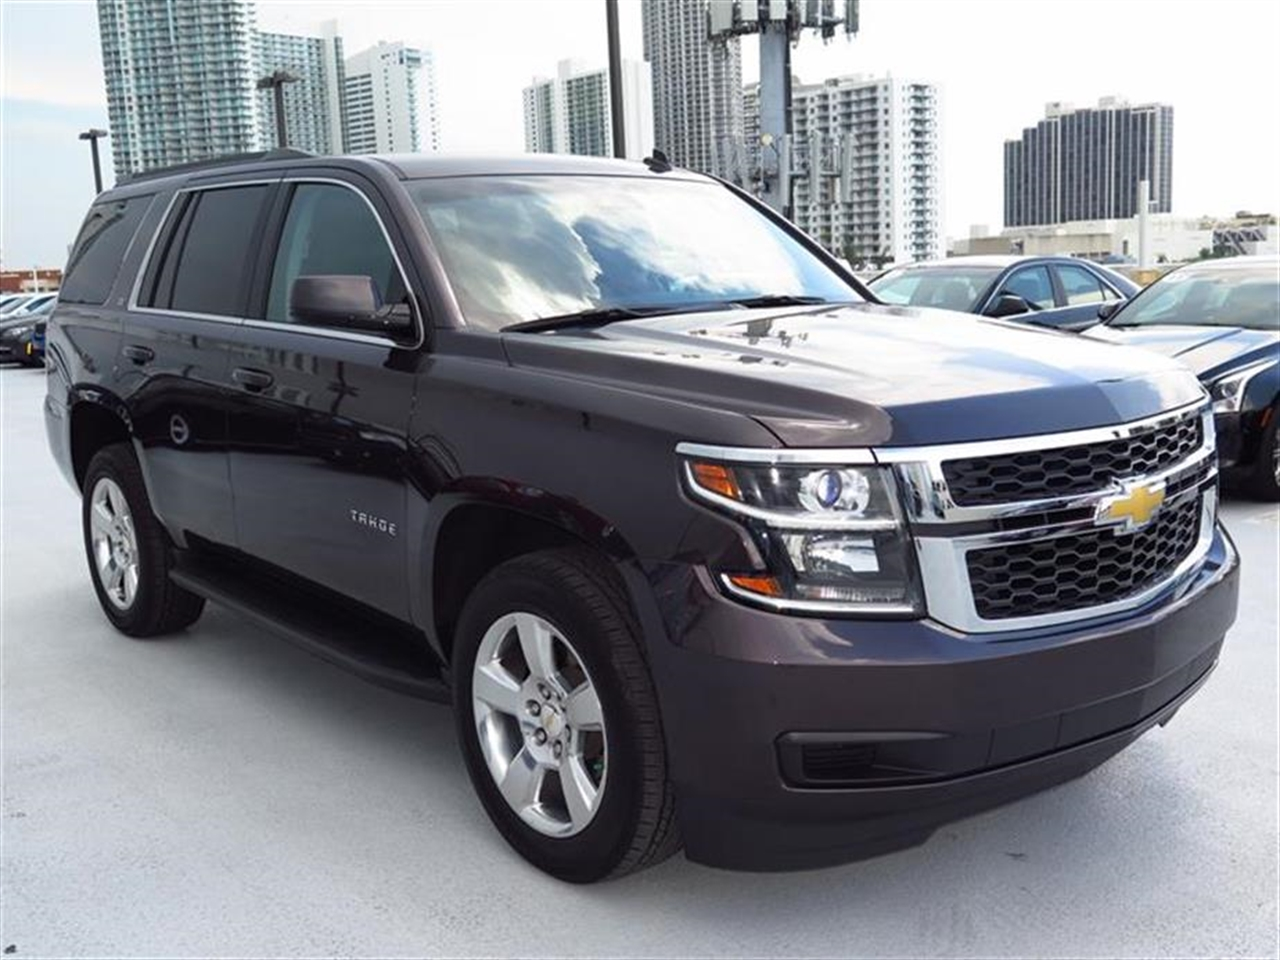 2015 CHEVROLET TAHOE 2WD 4dr LT 8057 miles Assist handles all seats Cargo management system Ca